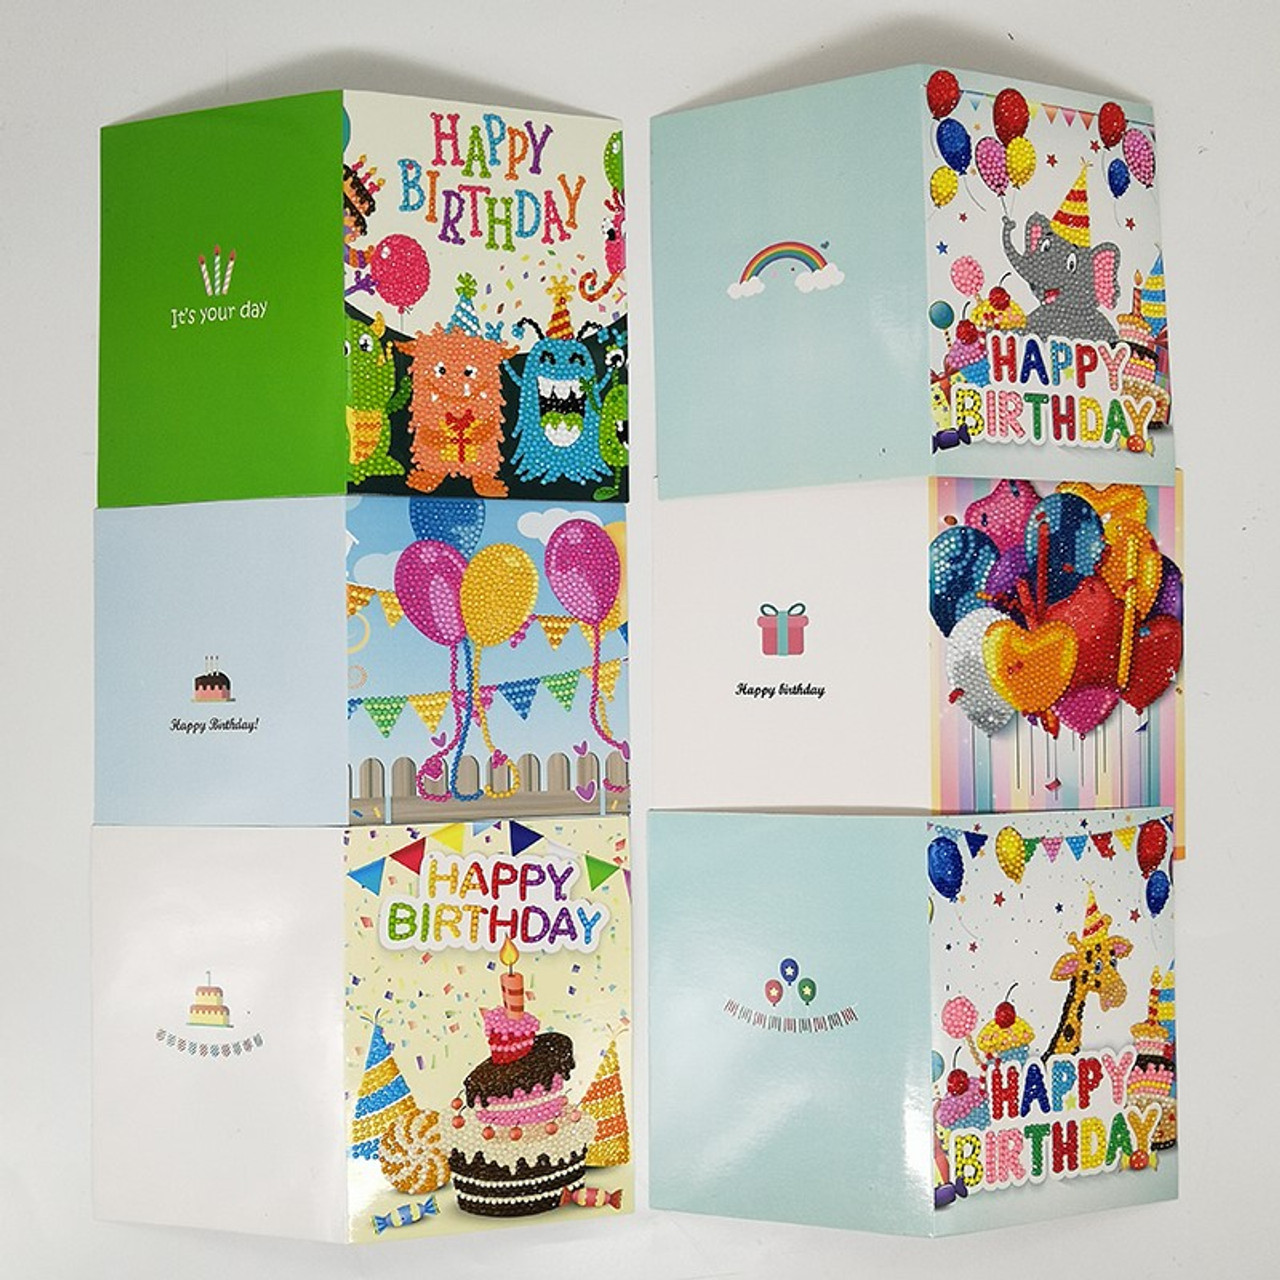 5D DIY Diamond Painting Birthday Card Kit - Set of 8